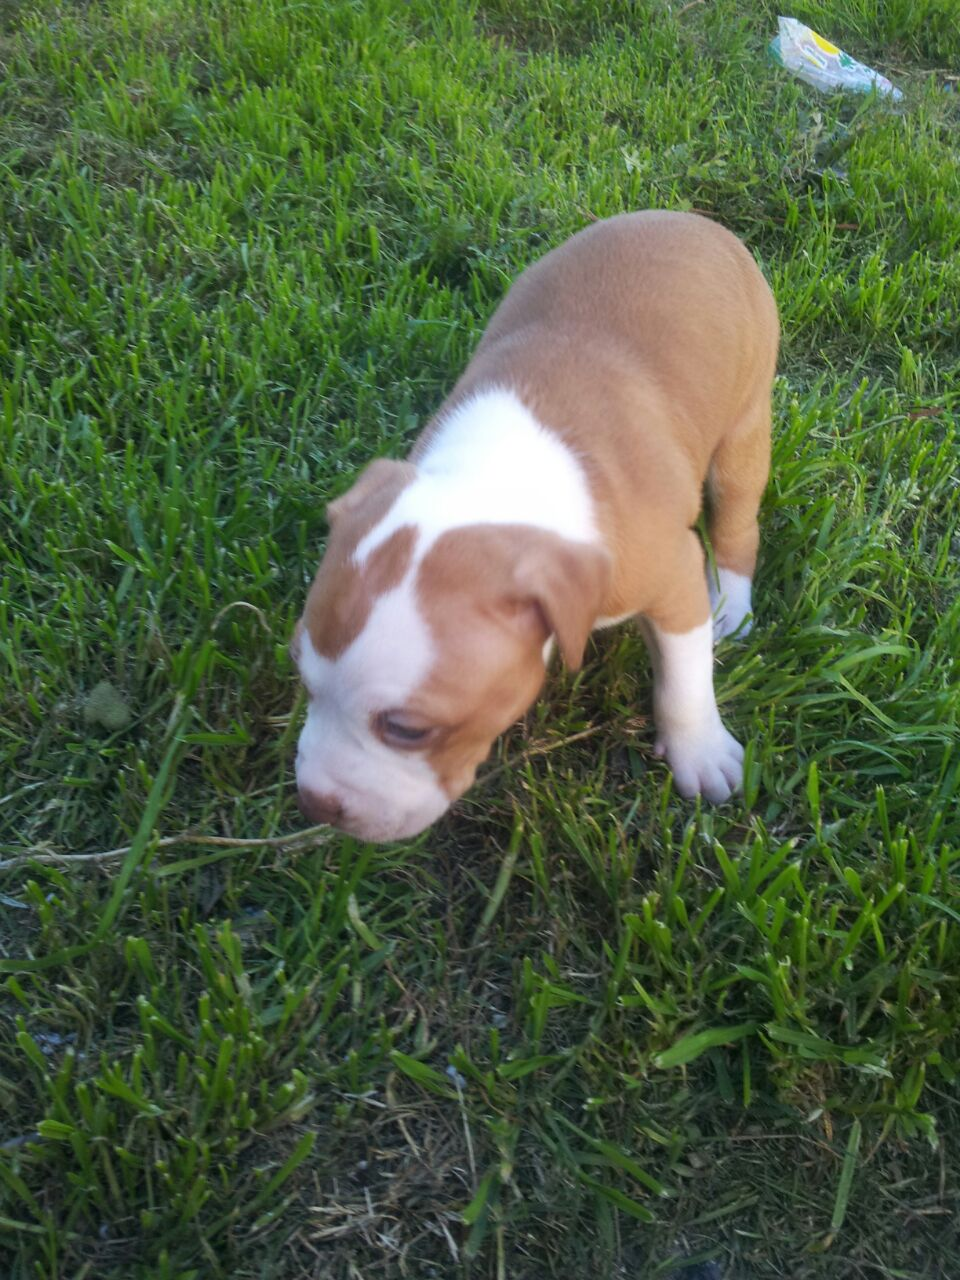 Pitbull Puppies for Sale in Cape Town by Anthony Dooley